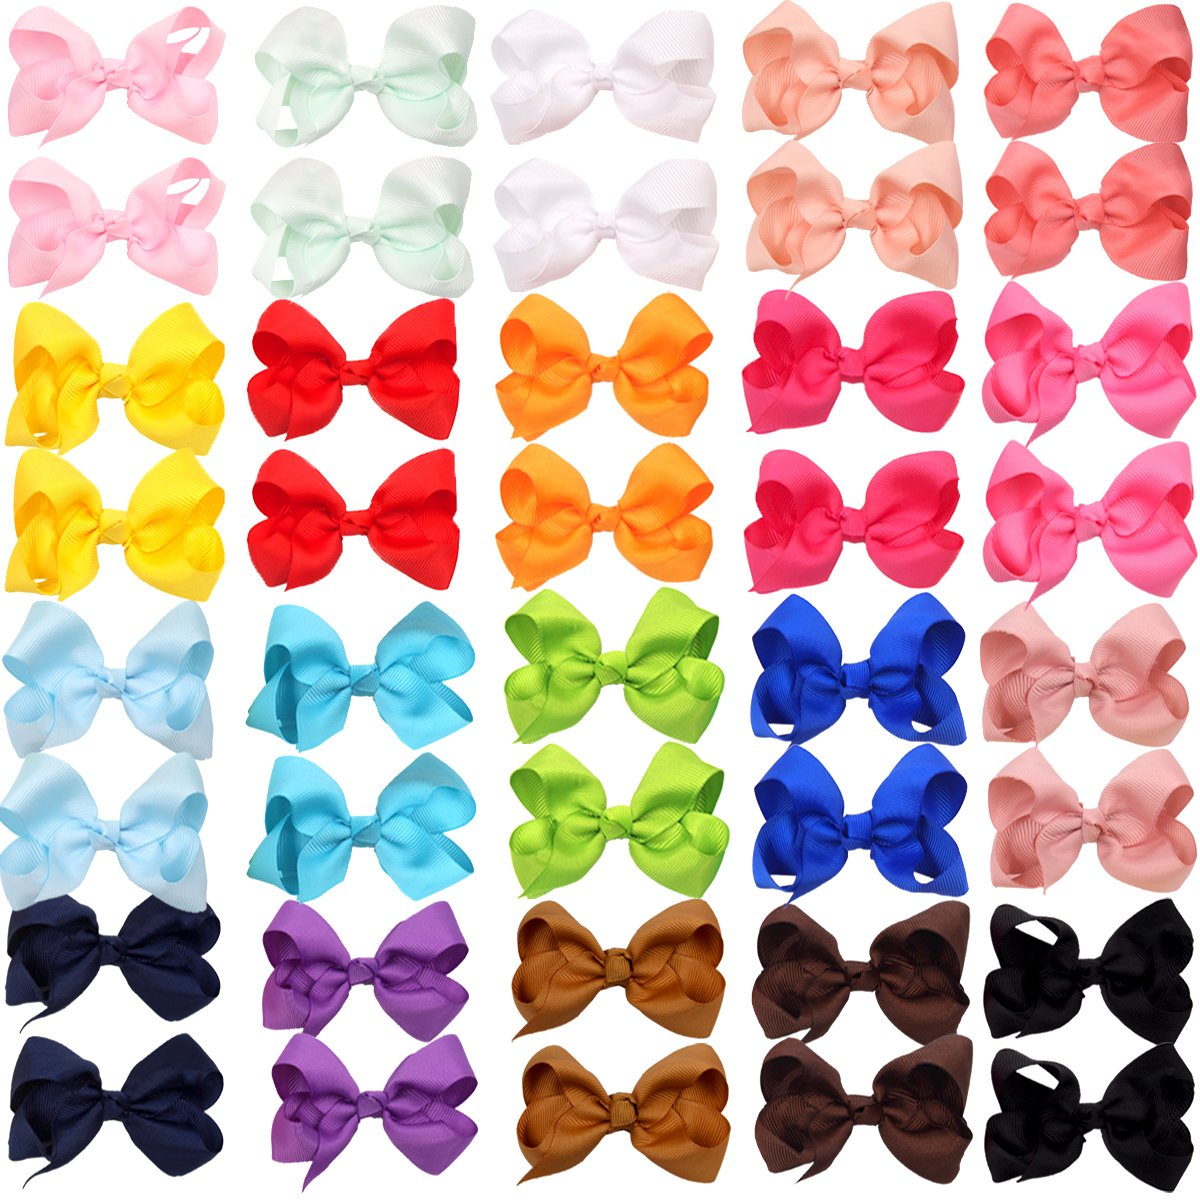 40pcs Mini Grosgrain Ribbon Pinwheel Hair Bows Alligator Clips for Baby Gilrs Toddlers Kids in Pairs